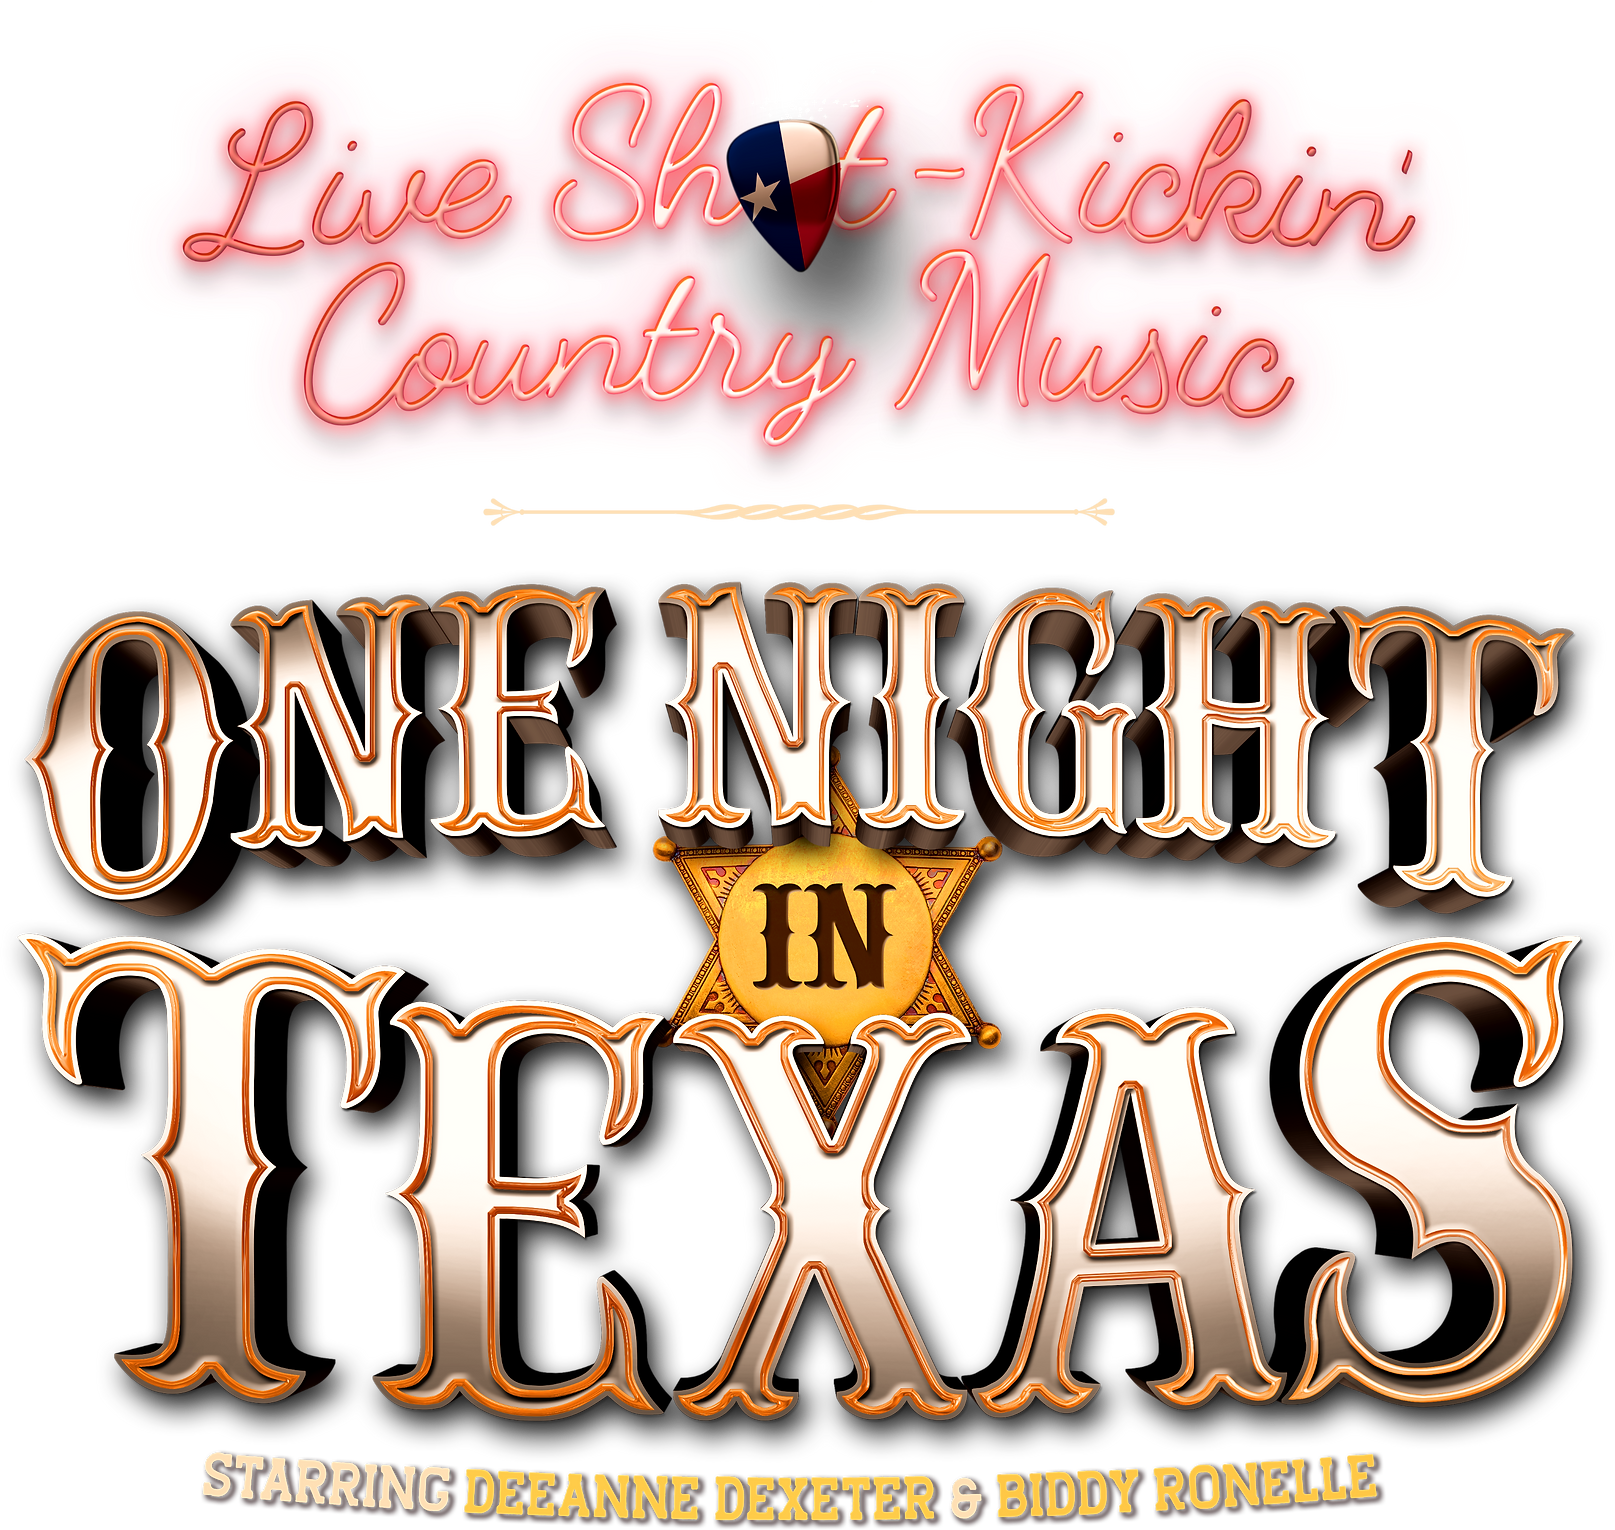 One Night in Texas poster 2022_edited.pn